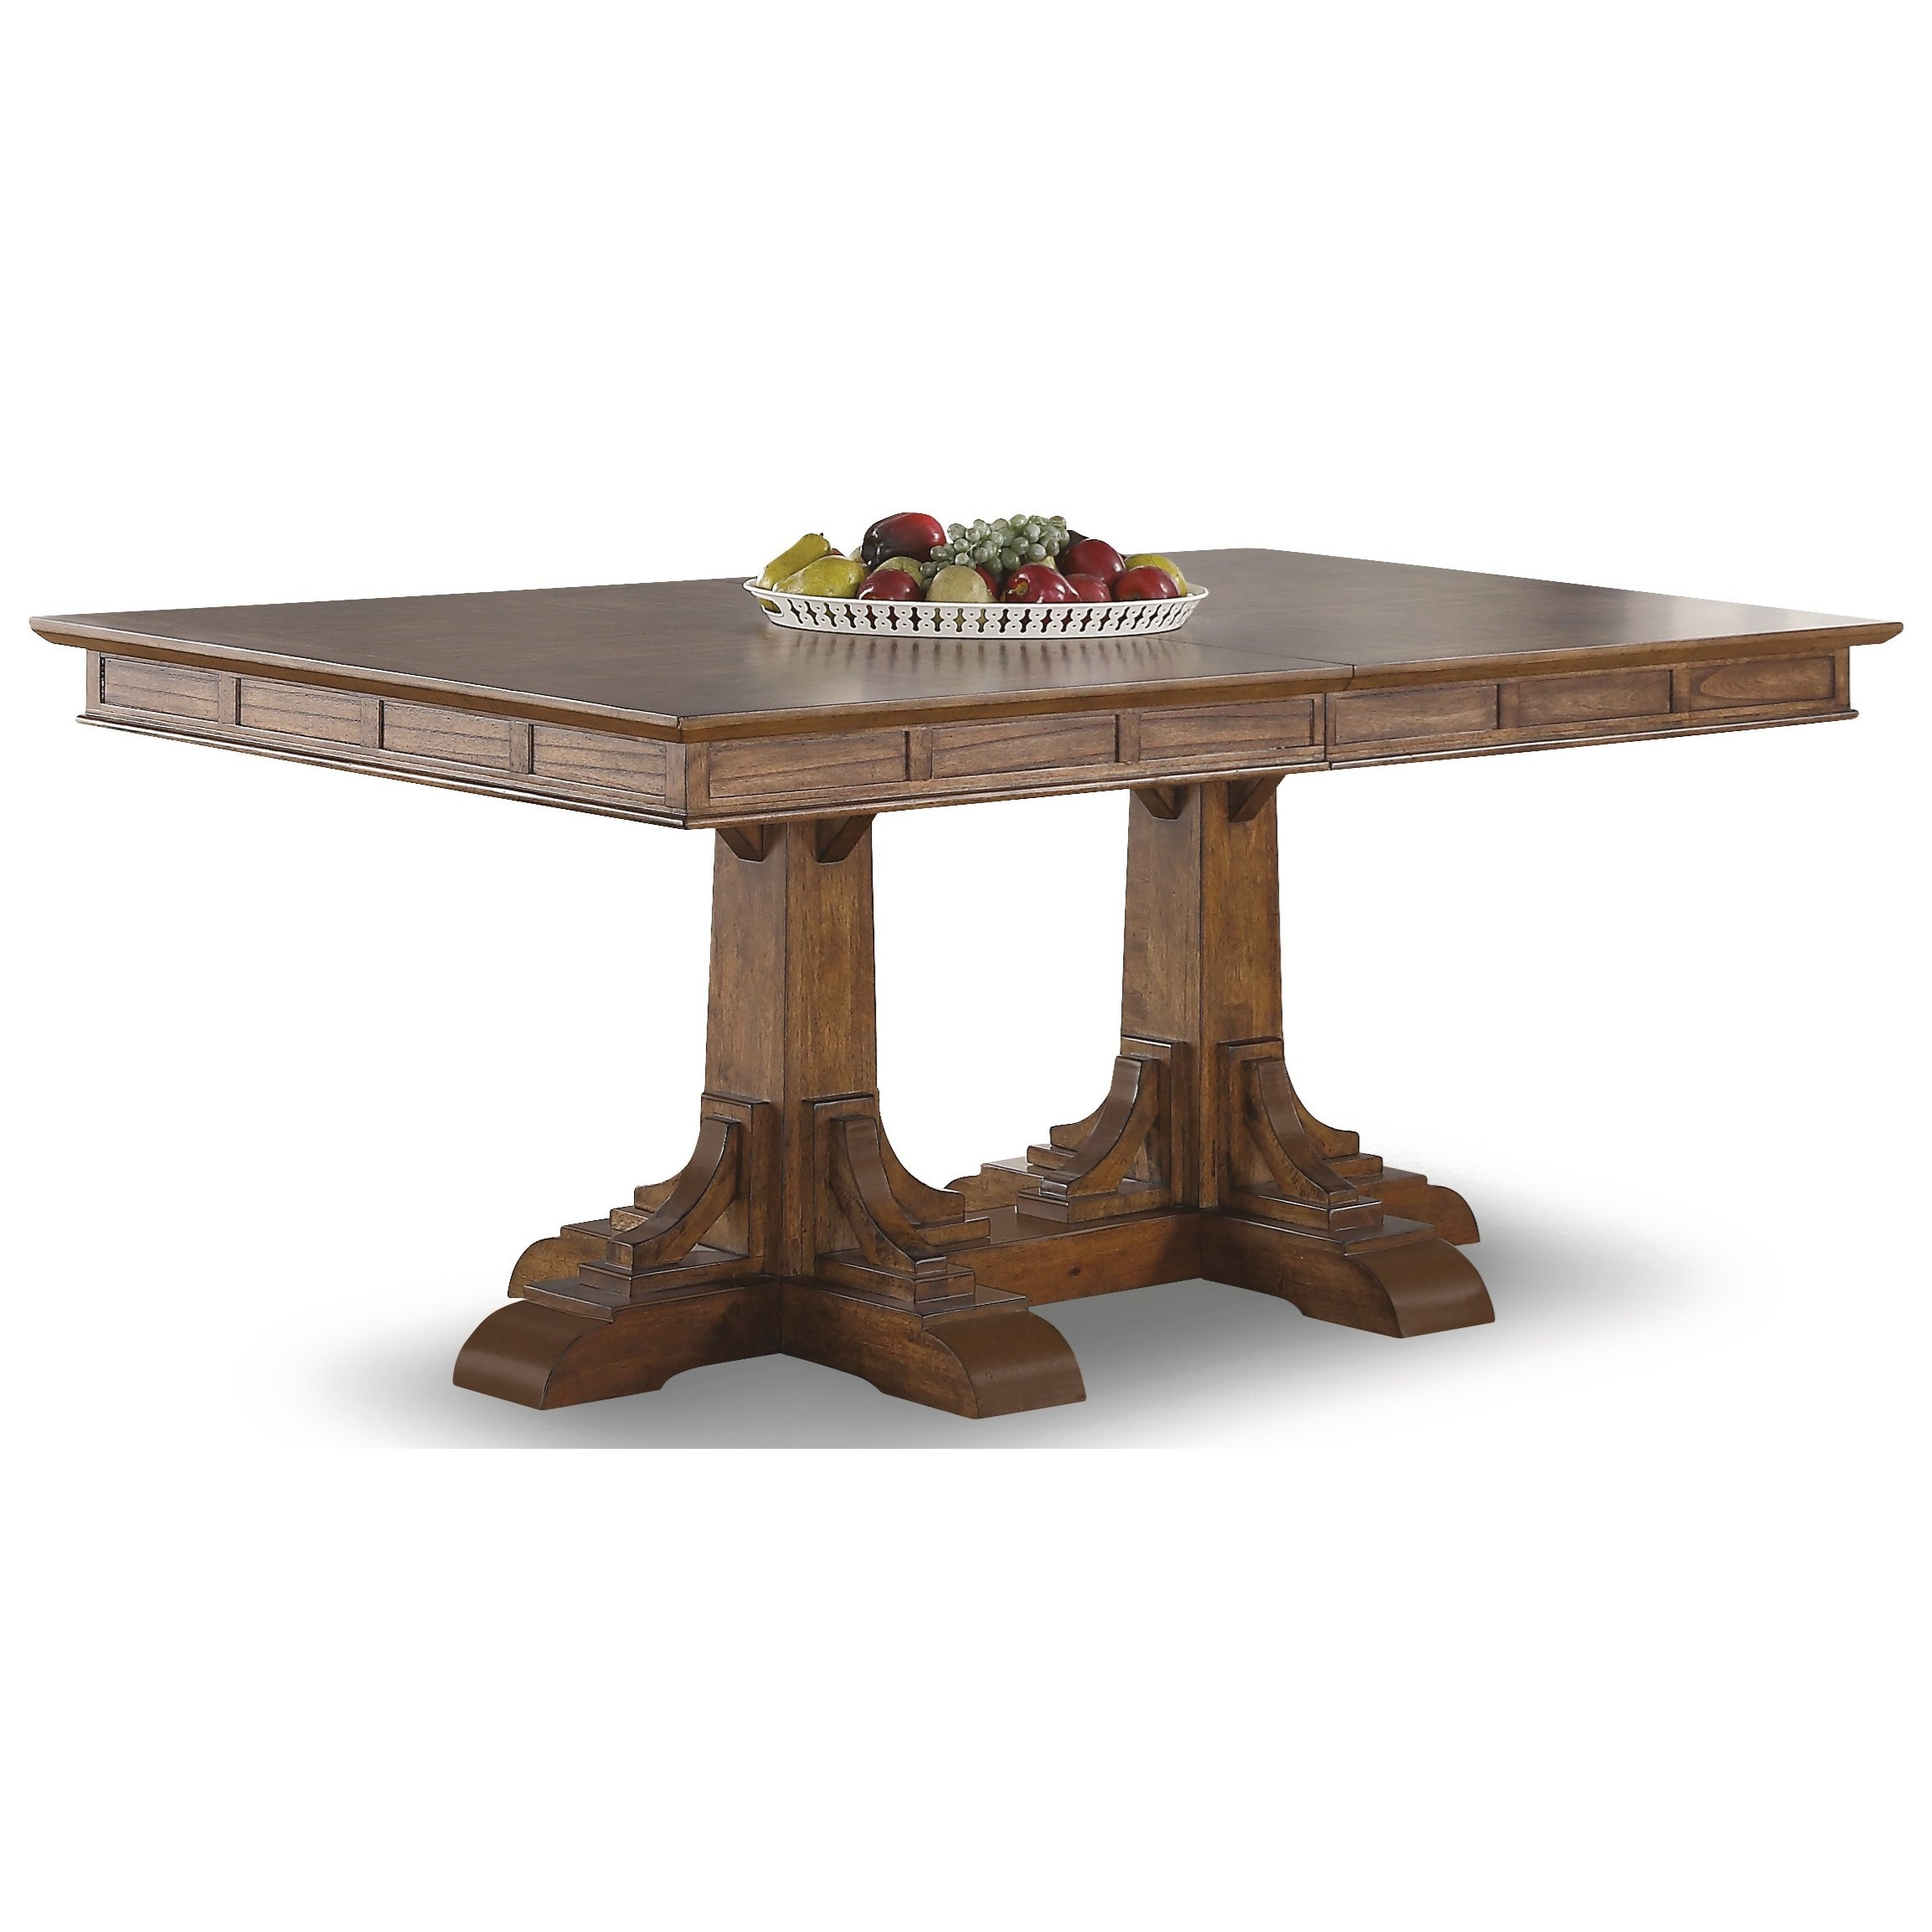 Flexsteel wynwood collection sonora w1134 830 mission rectangular pedestal dining table with - Pedestal dining table rectangular ...